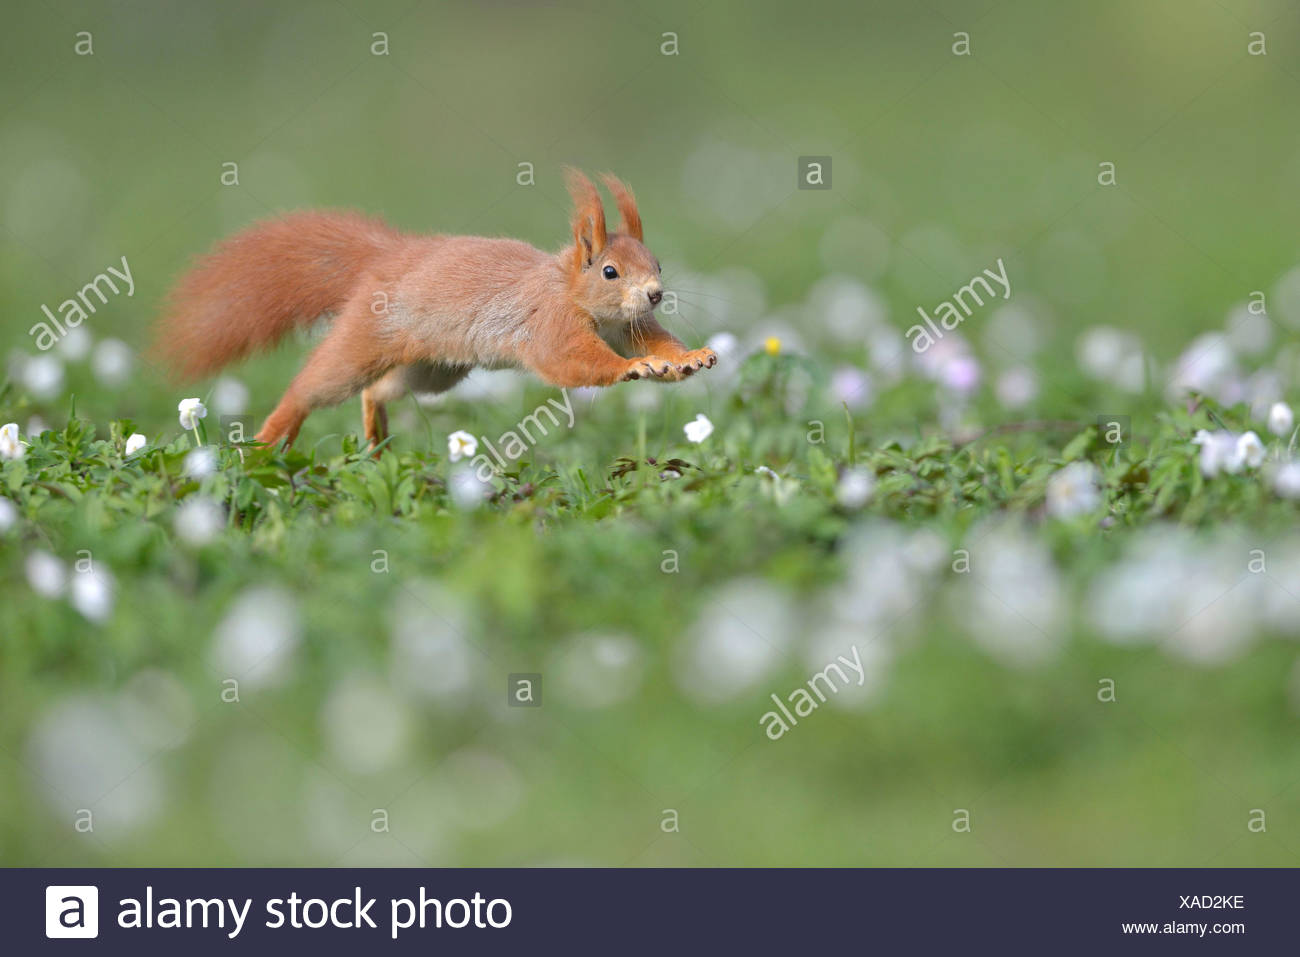 Red Squirrel or Eurasian Red Squirrel (Sciurus vulgaris), running, Saxony, Germany - Stock Image